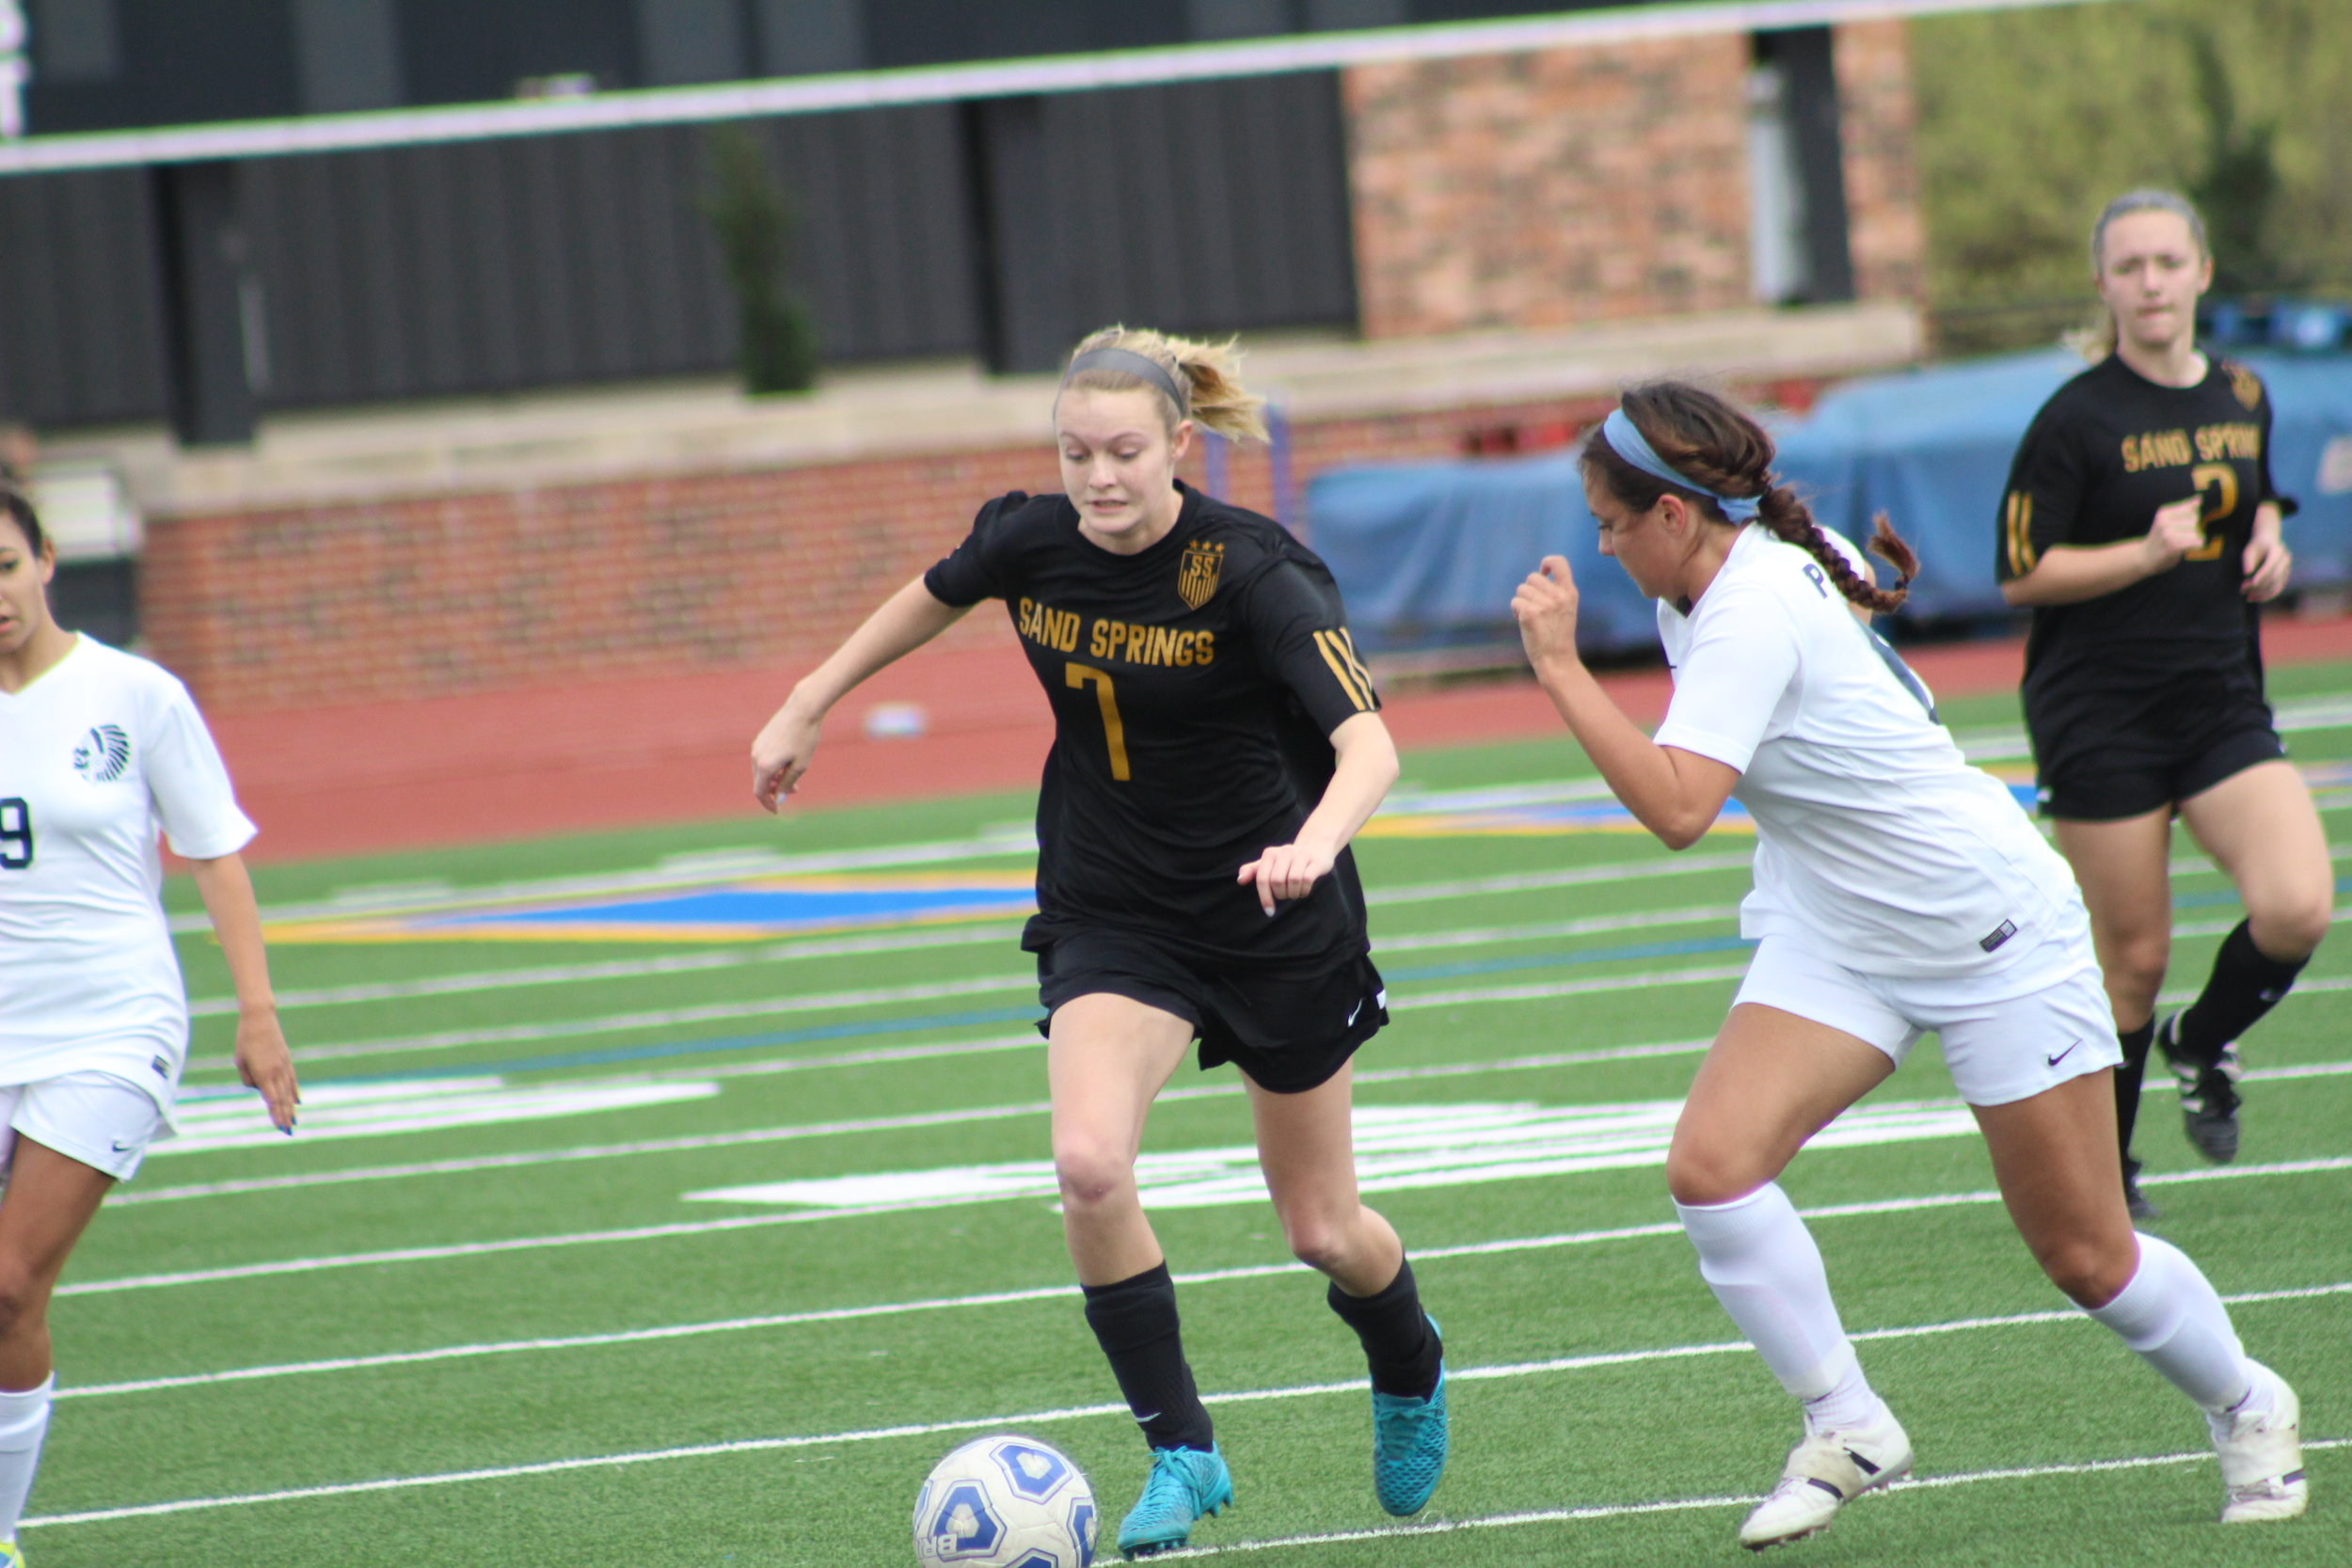 CPHS Senior Kyndal Zicker led her team with two goals in the 3-0 victory. (Photo: Emigh).